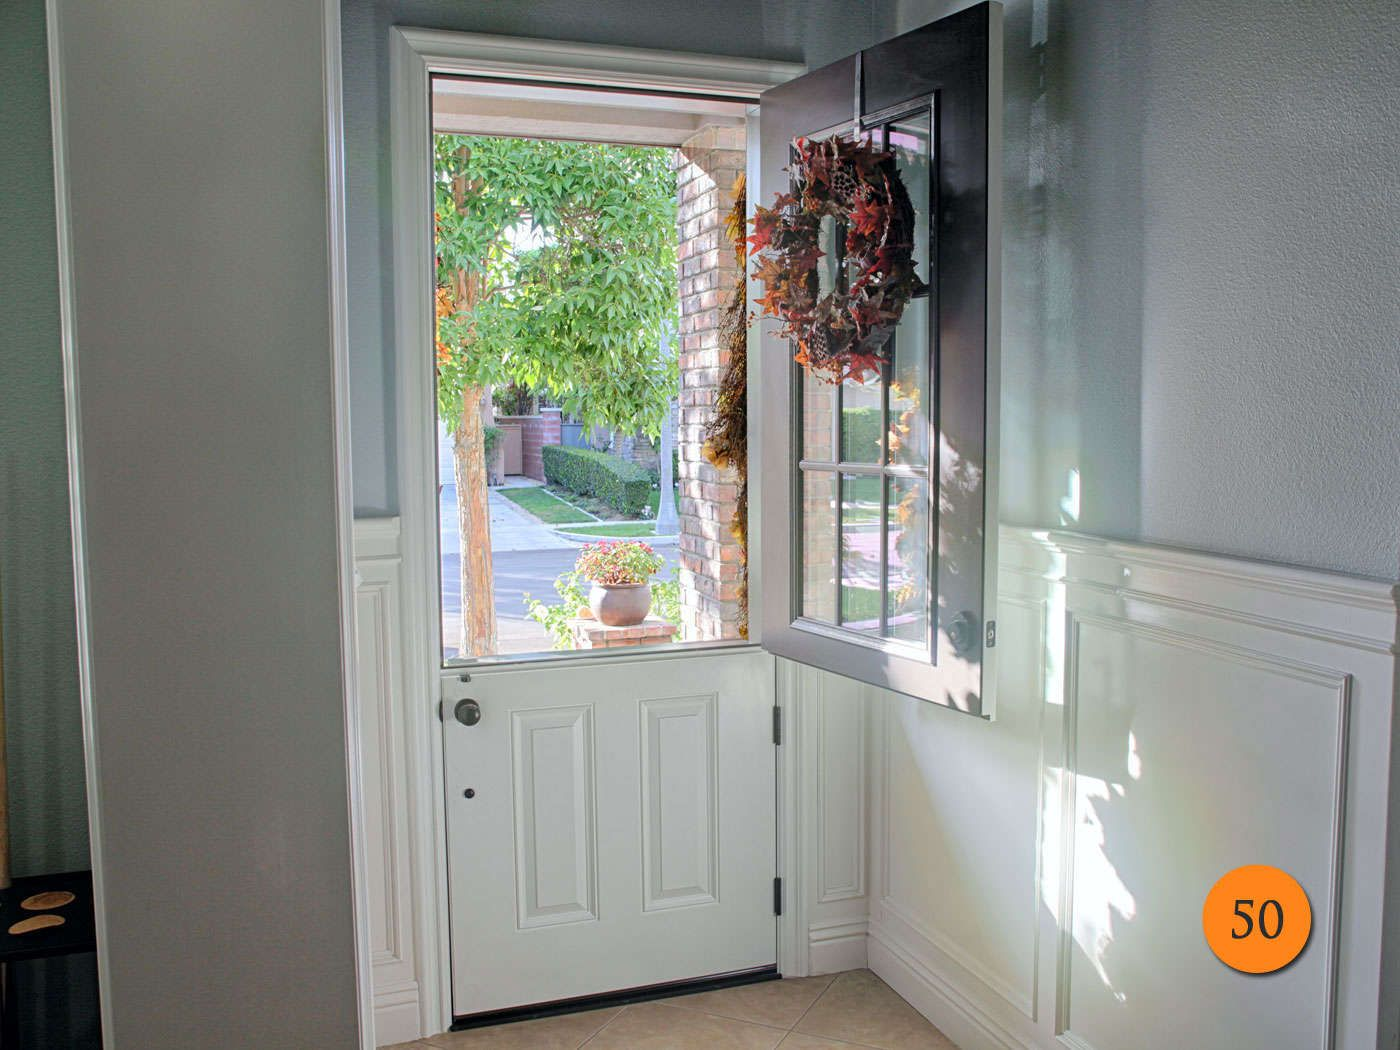 Plastpro 36 96 Single Dutch Door Clear 9 Lite Sdl Gl Model Drs4180 With Shelf Interior Painted Swiss Coffee Installed In Ladera Ranch Ca Home